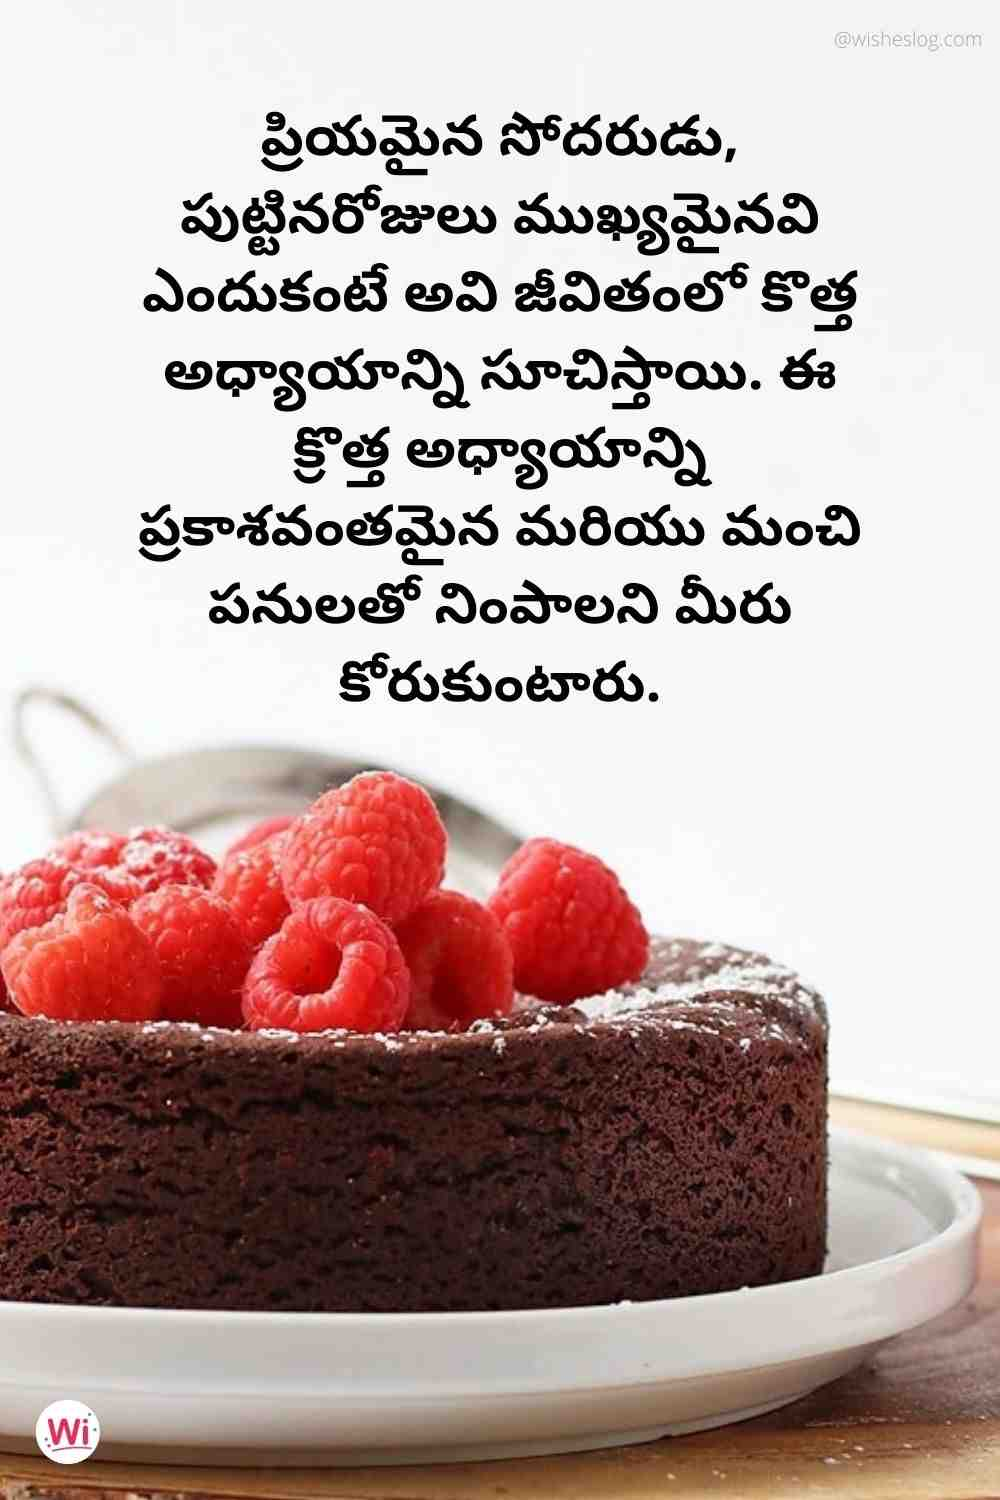 birthday wishes in telugu text for brother